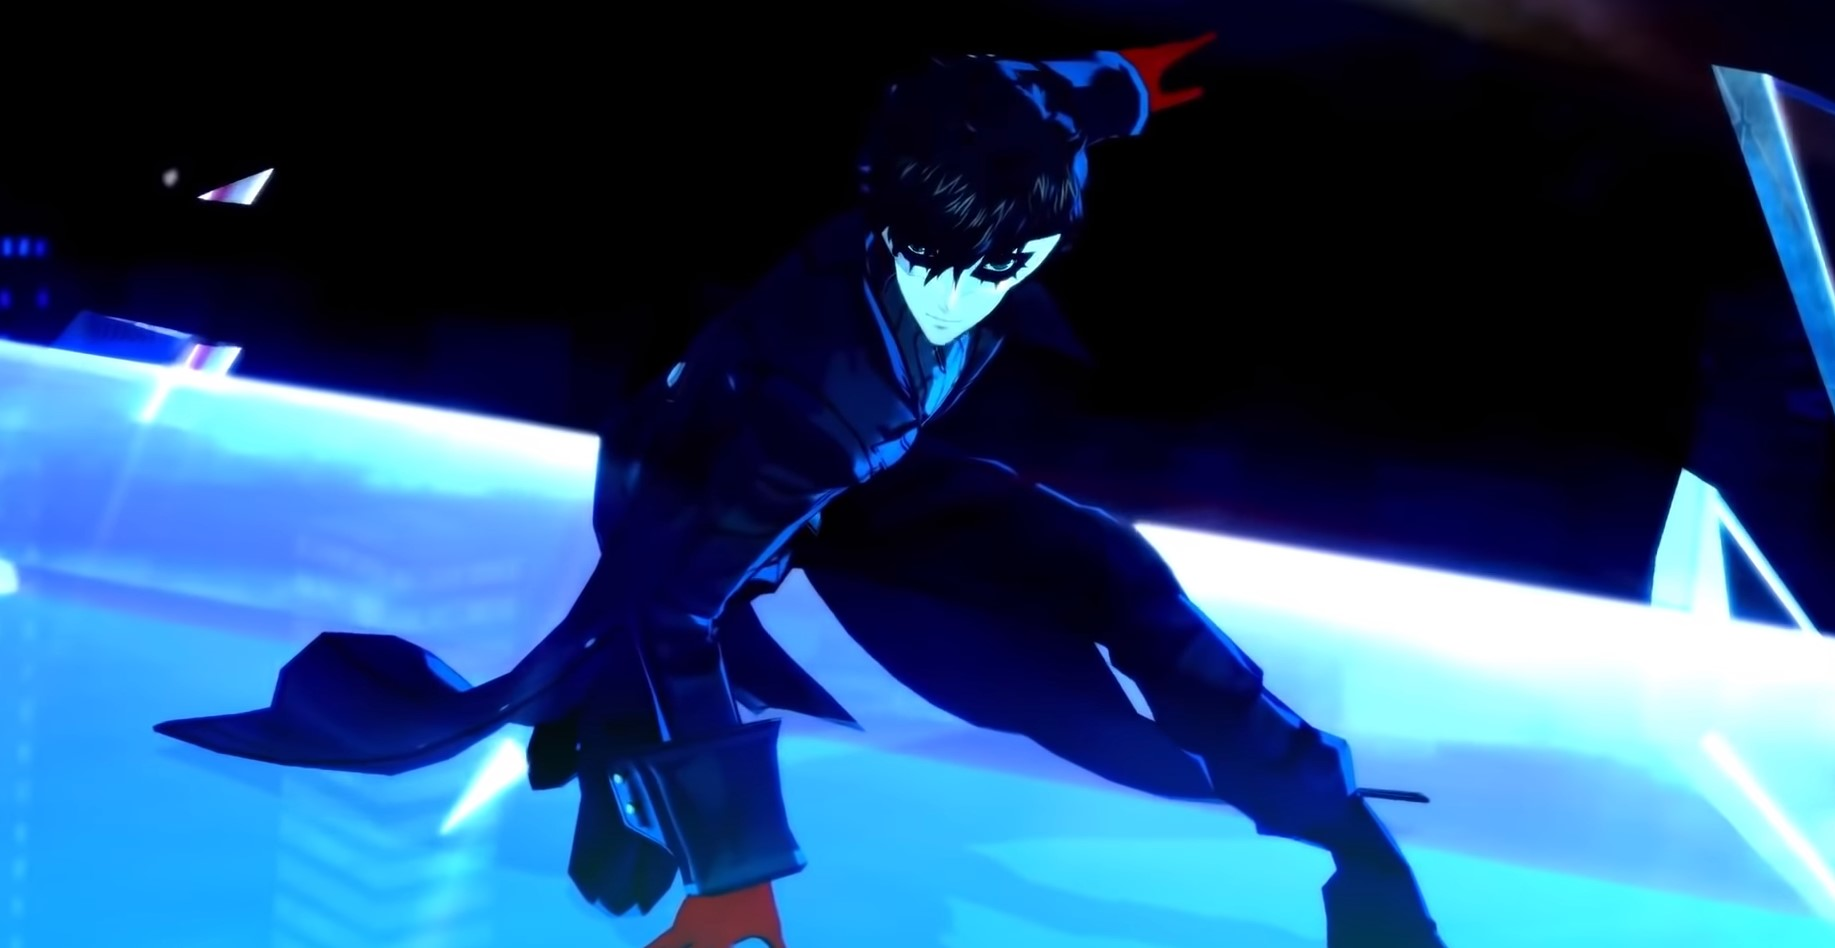 All Will Seed locations in Kamoshida's Palace in Persona 5: Royal